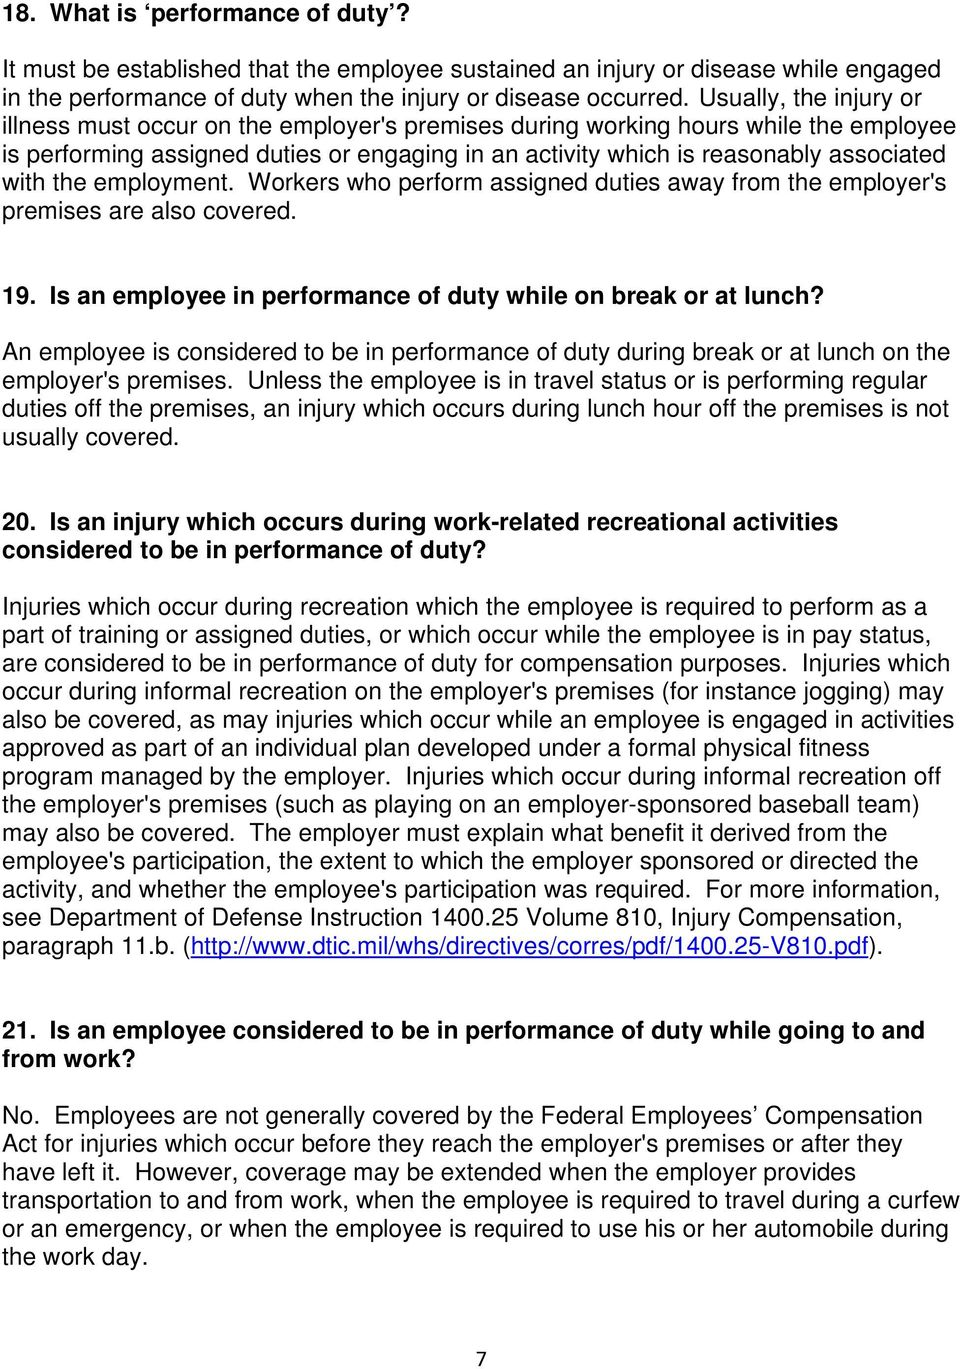 with the employment. Workers who perform assigned duties away from the employer's premises are also covered. 19. Is an employee in performance of duty while on break or at lunch?